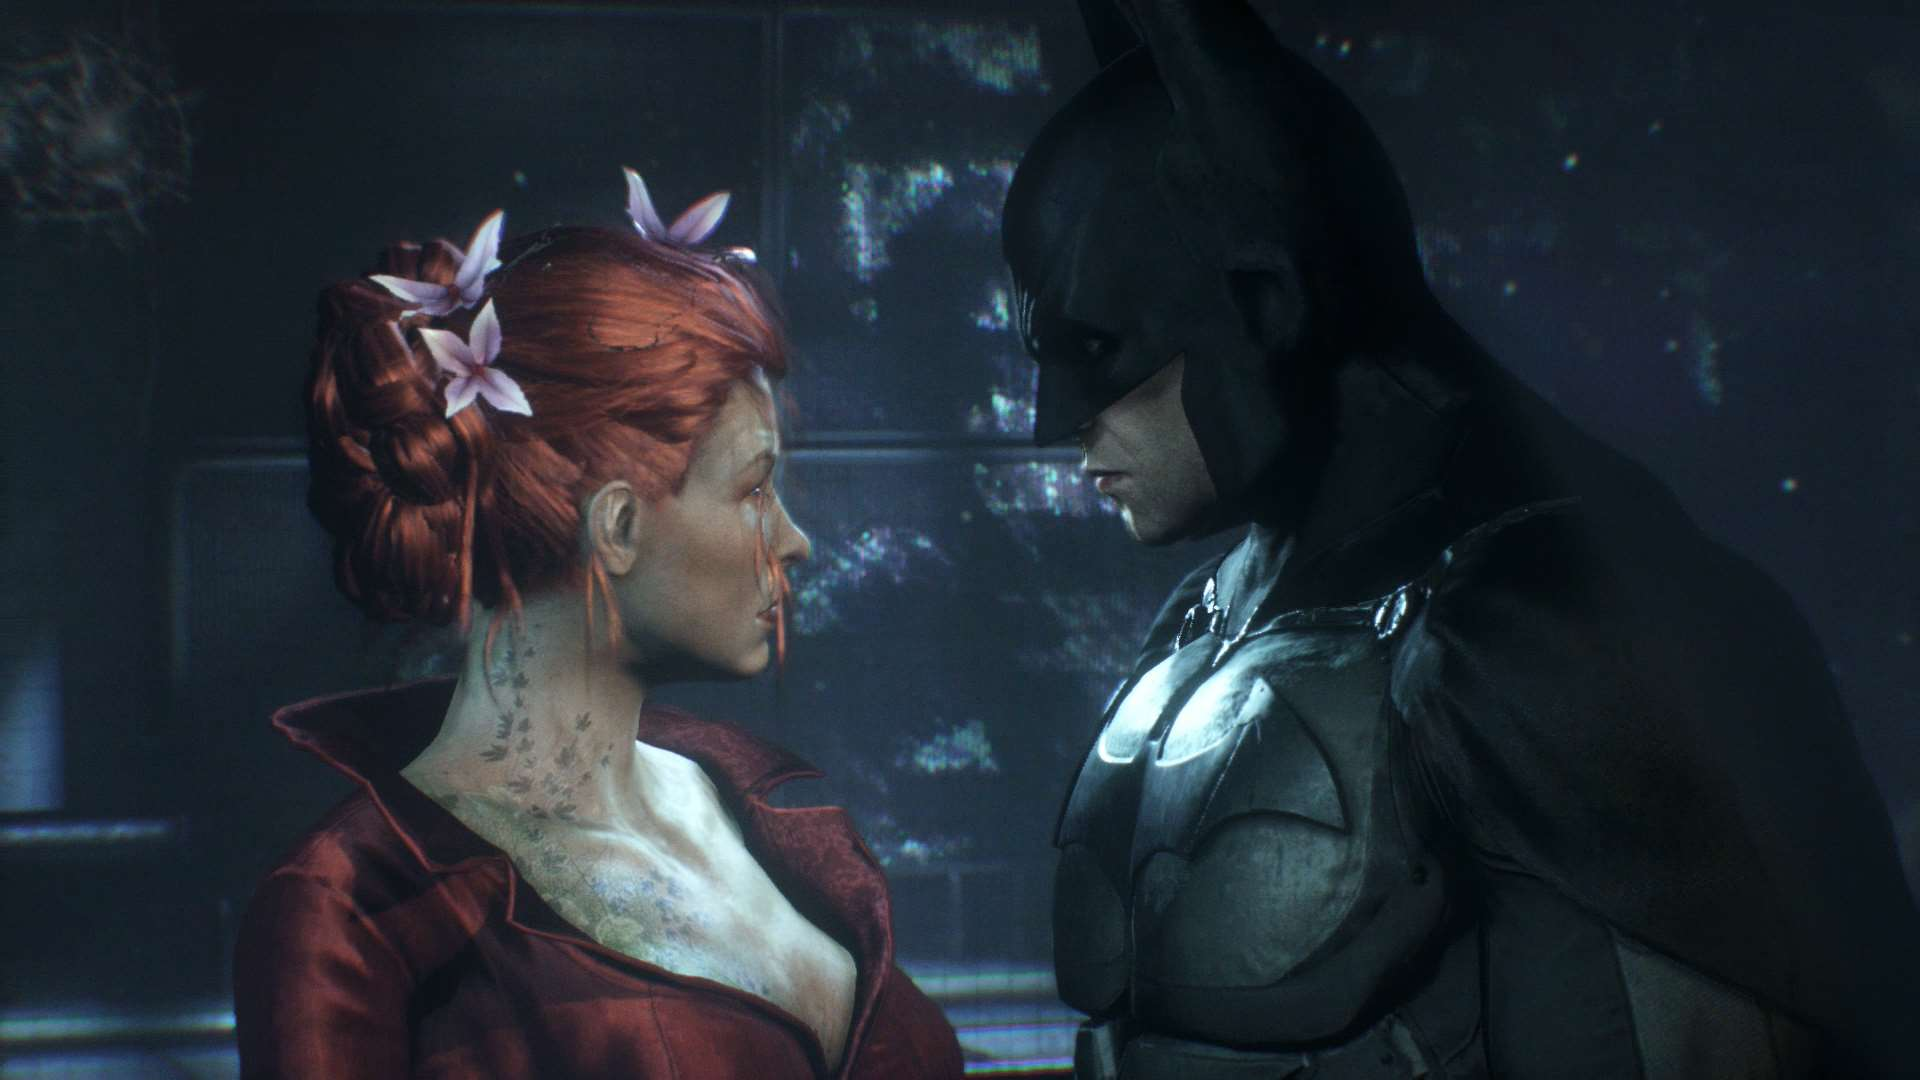 Wallpapers Fond D Ecran Pour Batman Arkham Knight Pc Ps4